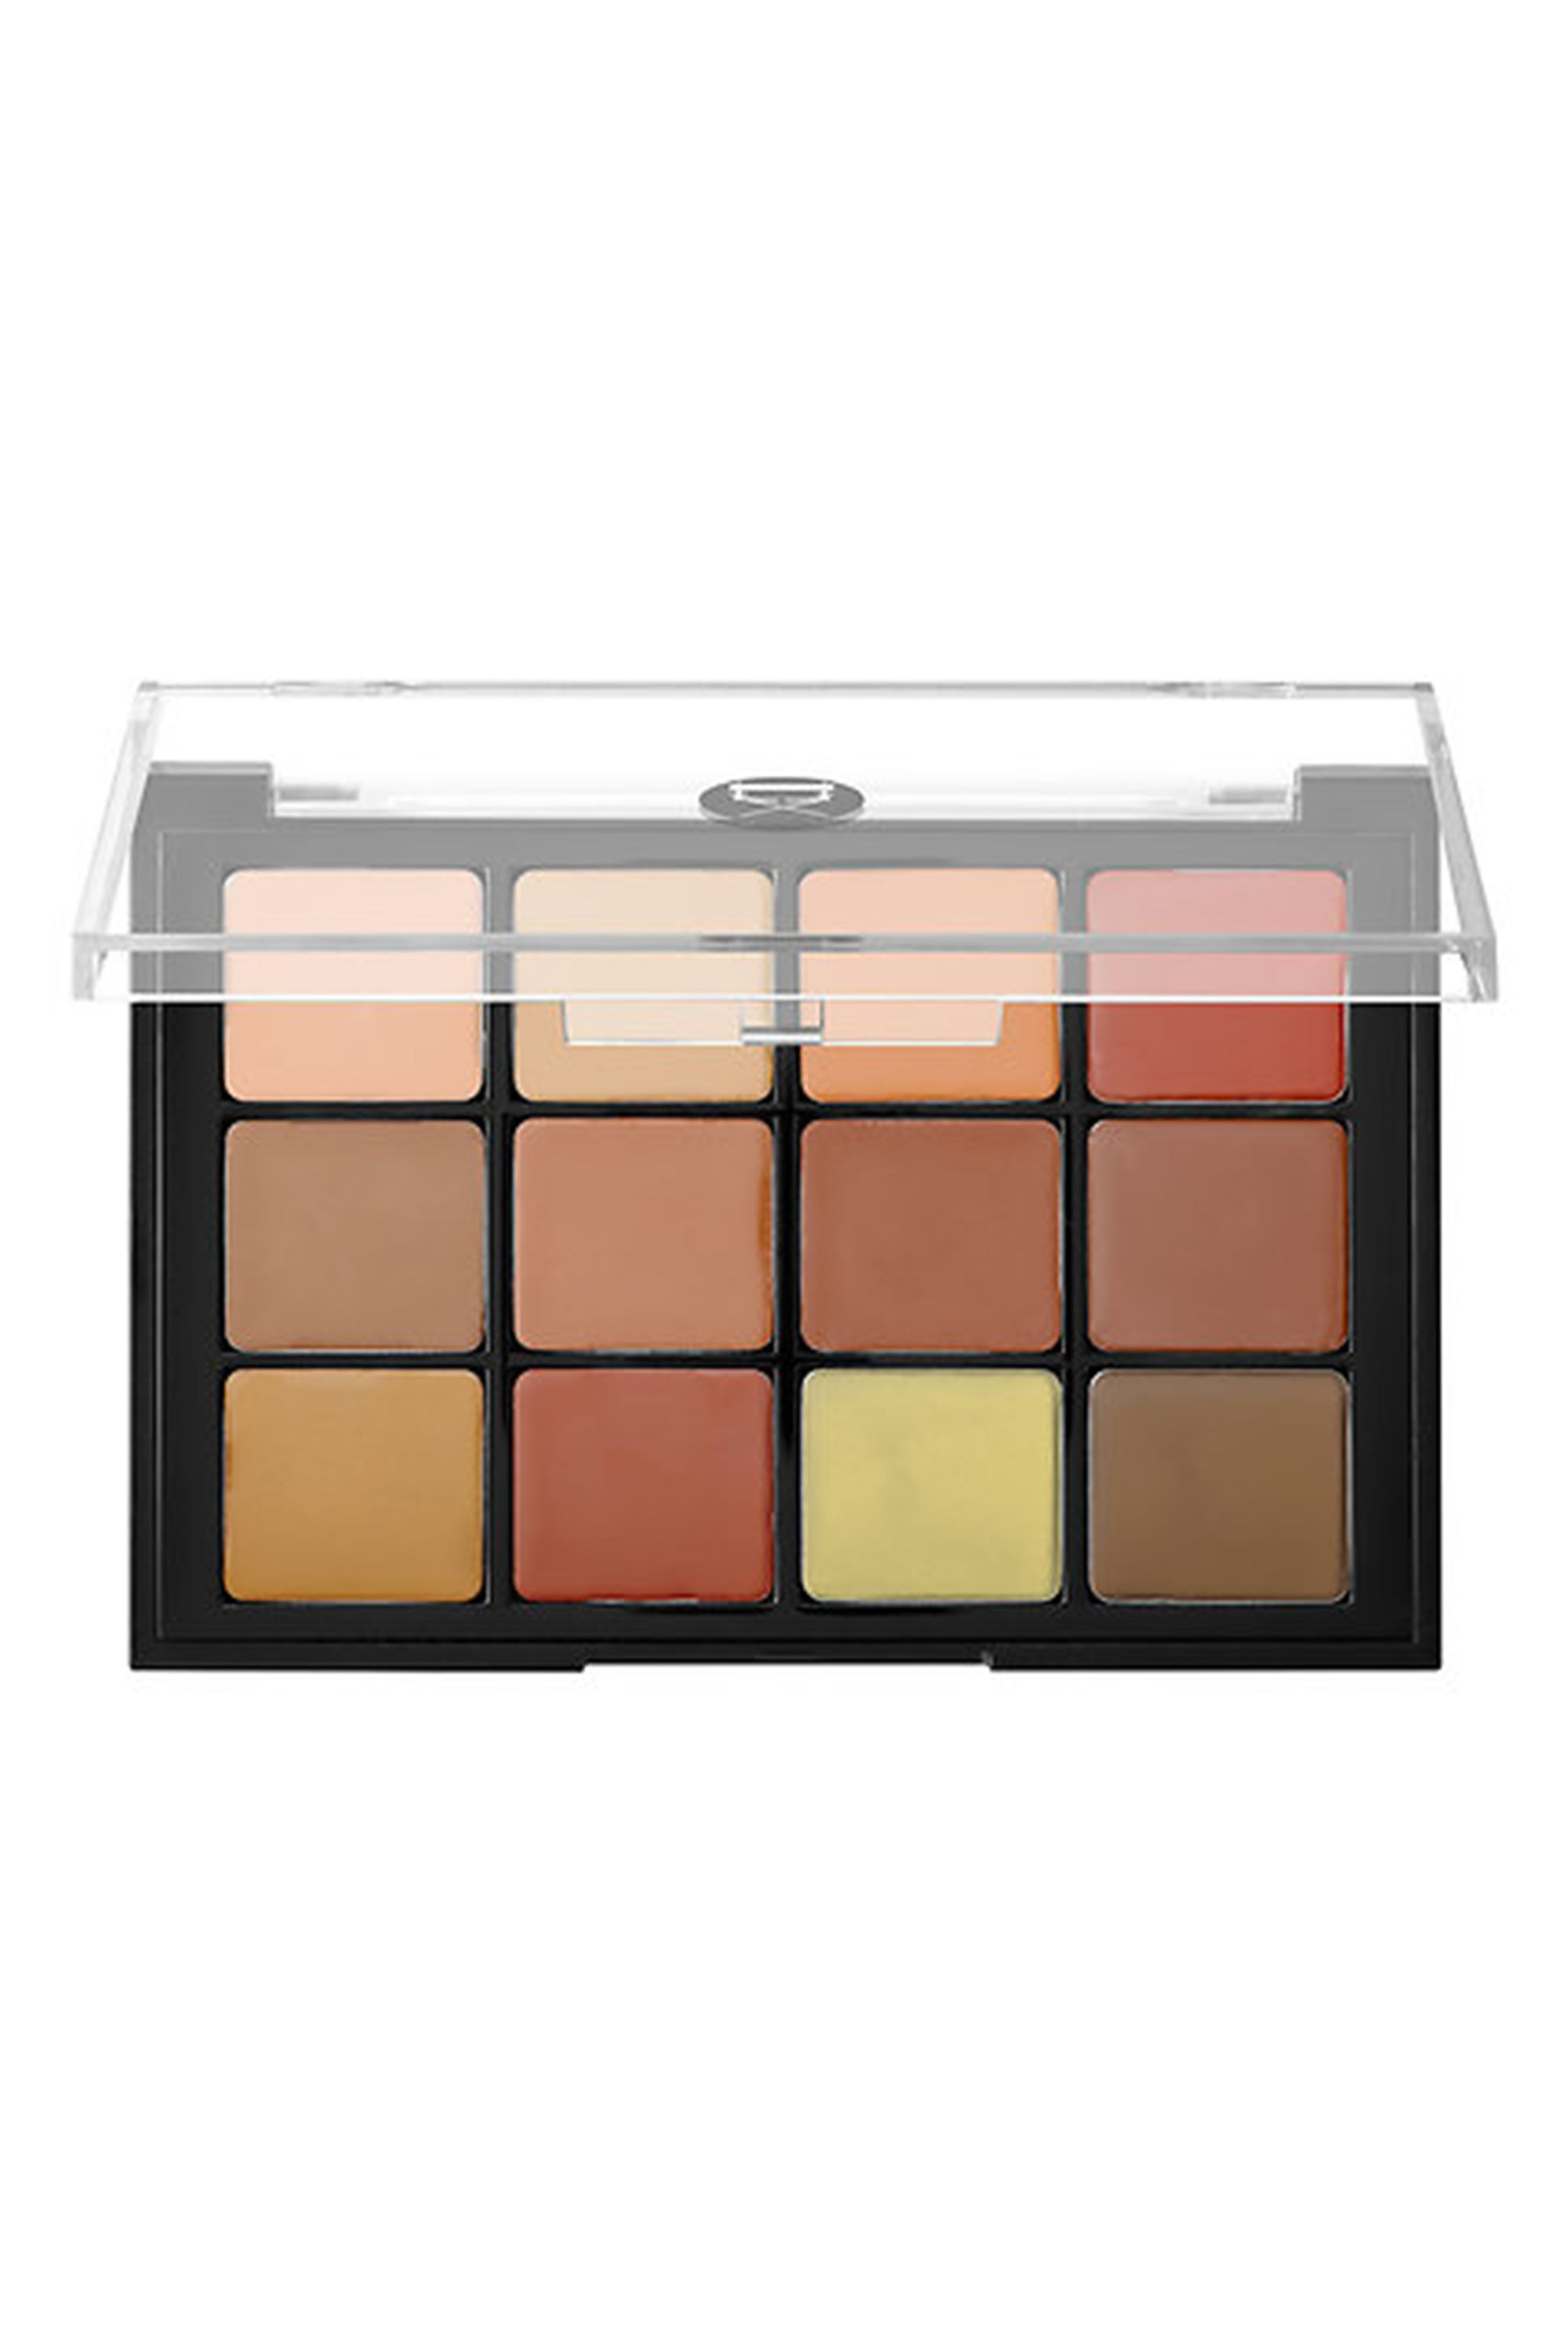 """<p>With the power to erase a multitude of imperfections, contour like a Kardashian, and all with an undetectable HD quality finish, you'll want to keep this compact on hand for anytime the desire to vlog strikes you.</p><p><em data-redactor-tag=""""em"""" data-verified=""""redactor"""">$80, </em><a href=""""http://www.sephora.com/viseart-corrector-contour-camouflage-hd-palette-P391305"""" data-tracking-id=""""recirc-text-link""""><em data-redactor-tag=""""em"""" data-verified=""""redactor"""">sephora.com</em></a></p>"""